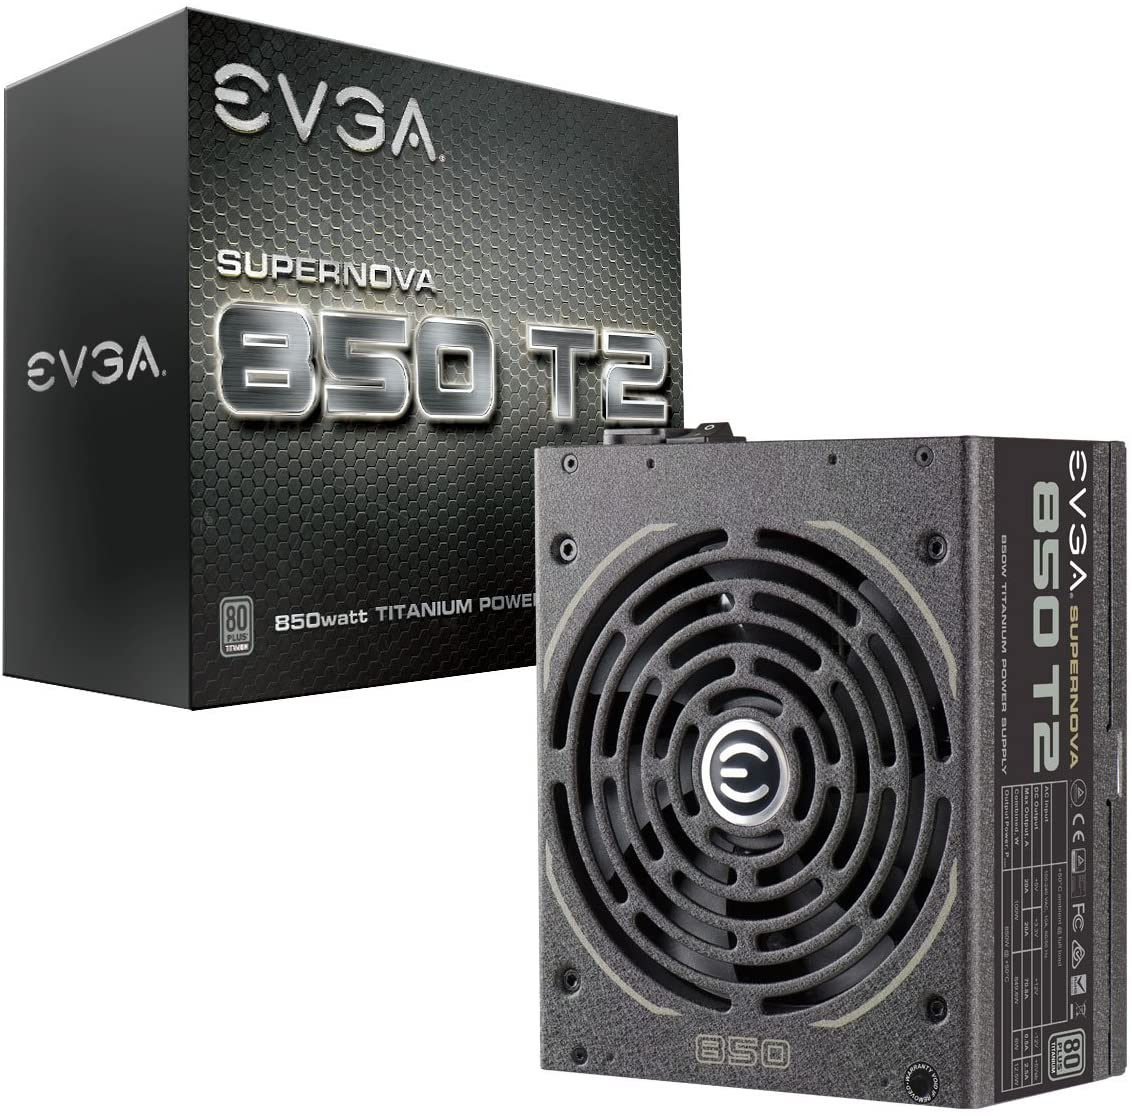 EVGA Supernova 850 T2, 80+ Titanium 850W, Fully Modular, ECO Mode, 10 Year Warranty, Includes Free Power On Self Tester, Power Supply 220-T2-0850-X1, 850 Watt